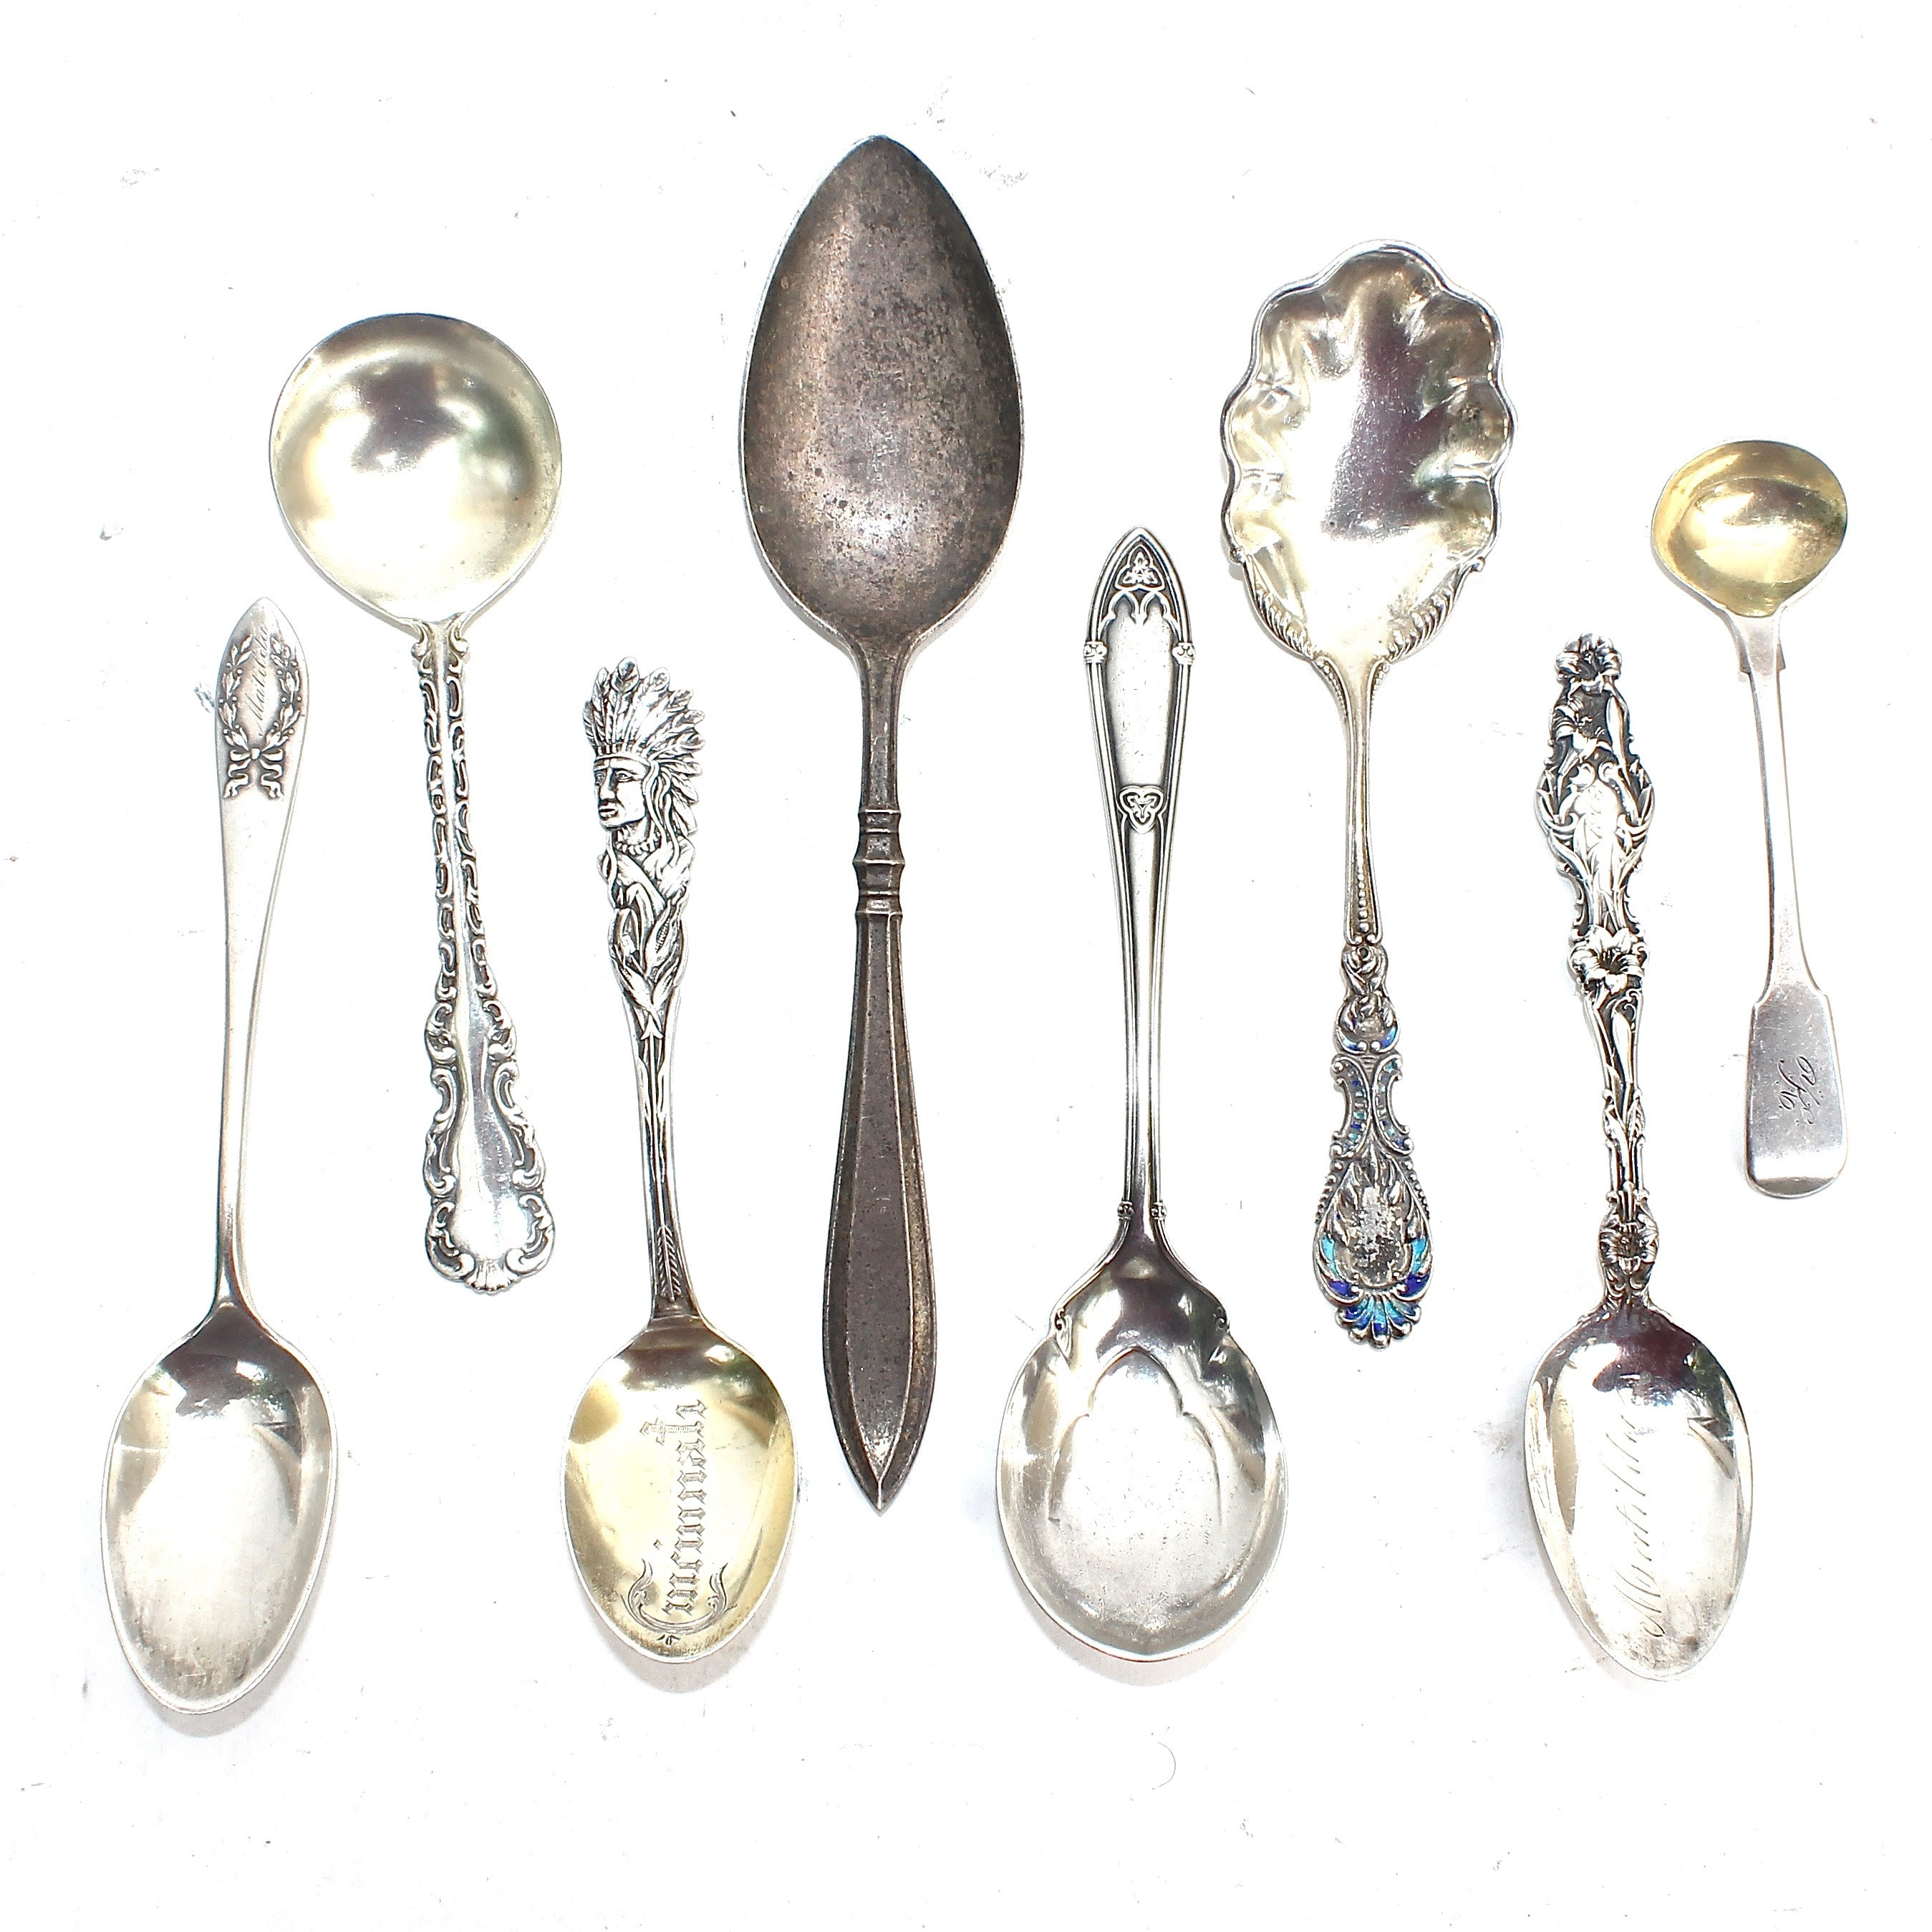 Collection of Vintage Sterling Silver Flatware